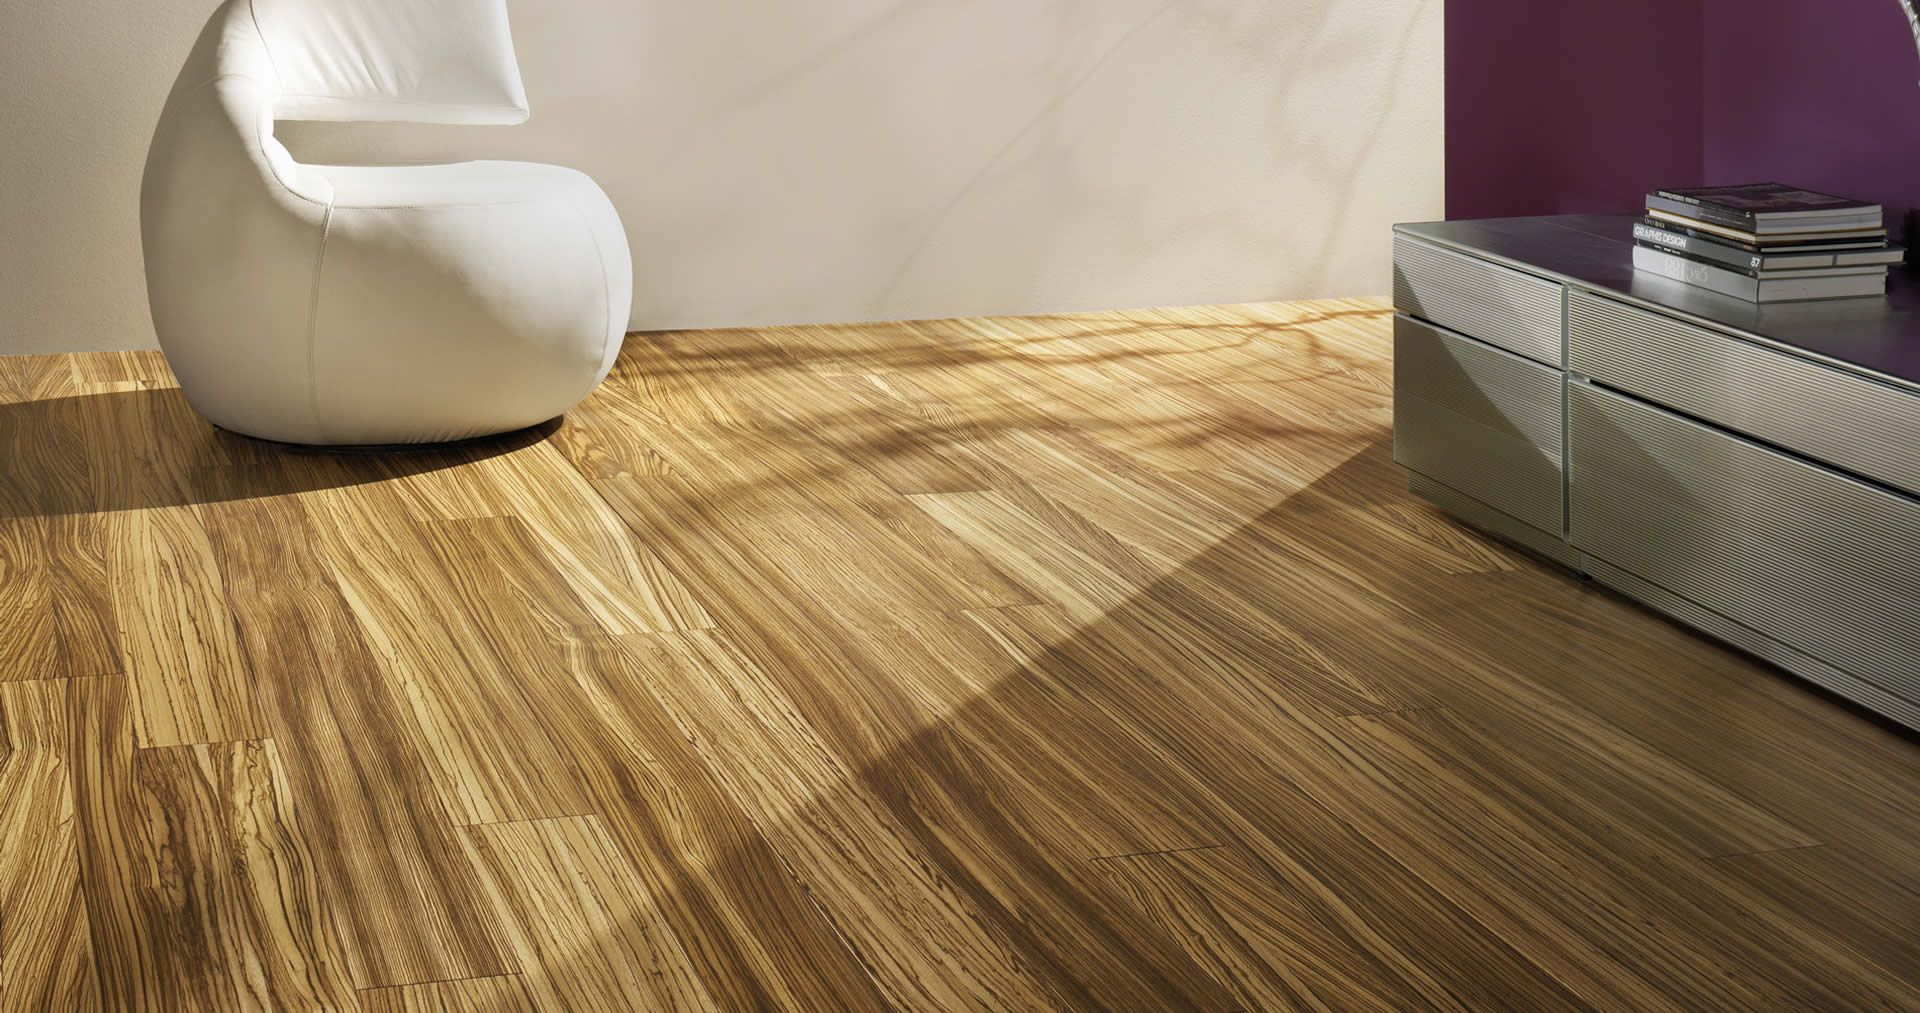 5 Benefits Of Laminate Flooring! | Laminate flooring, Woods and ...